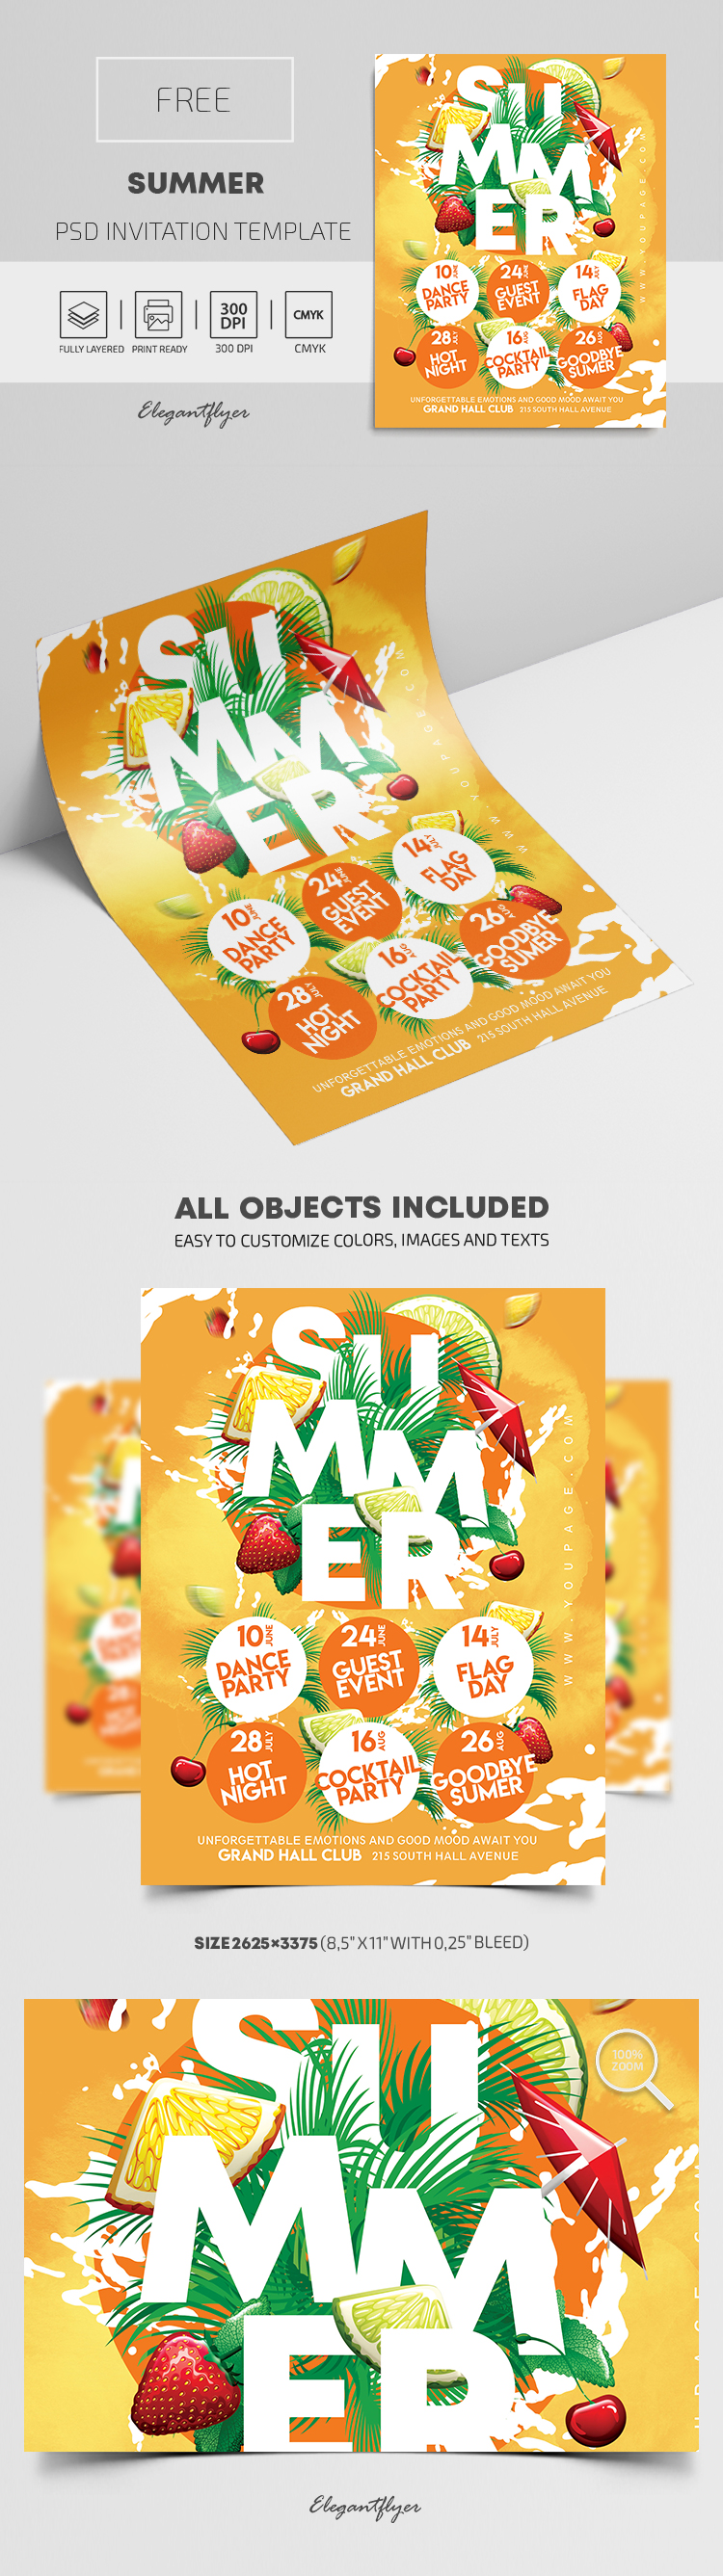 Summer – Free Invitation PSD Template